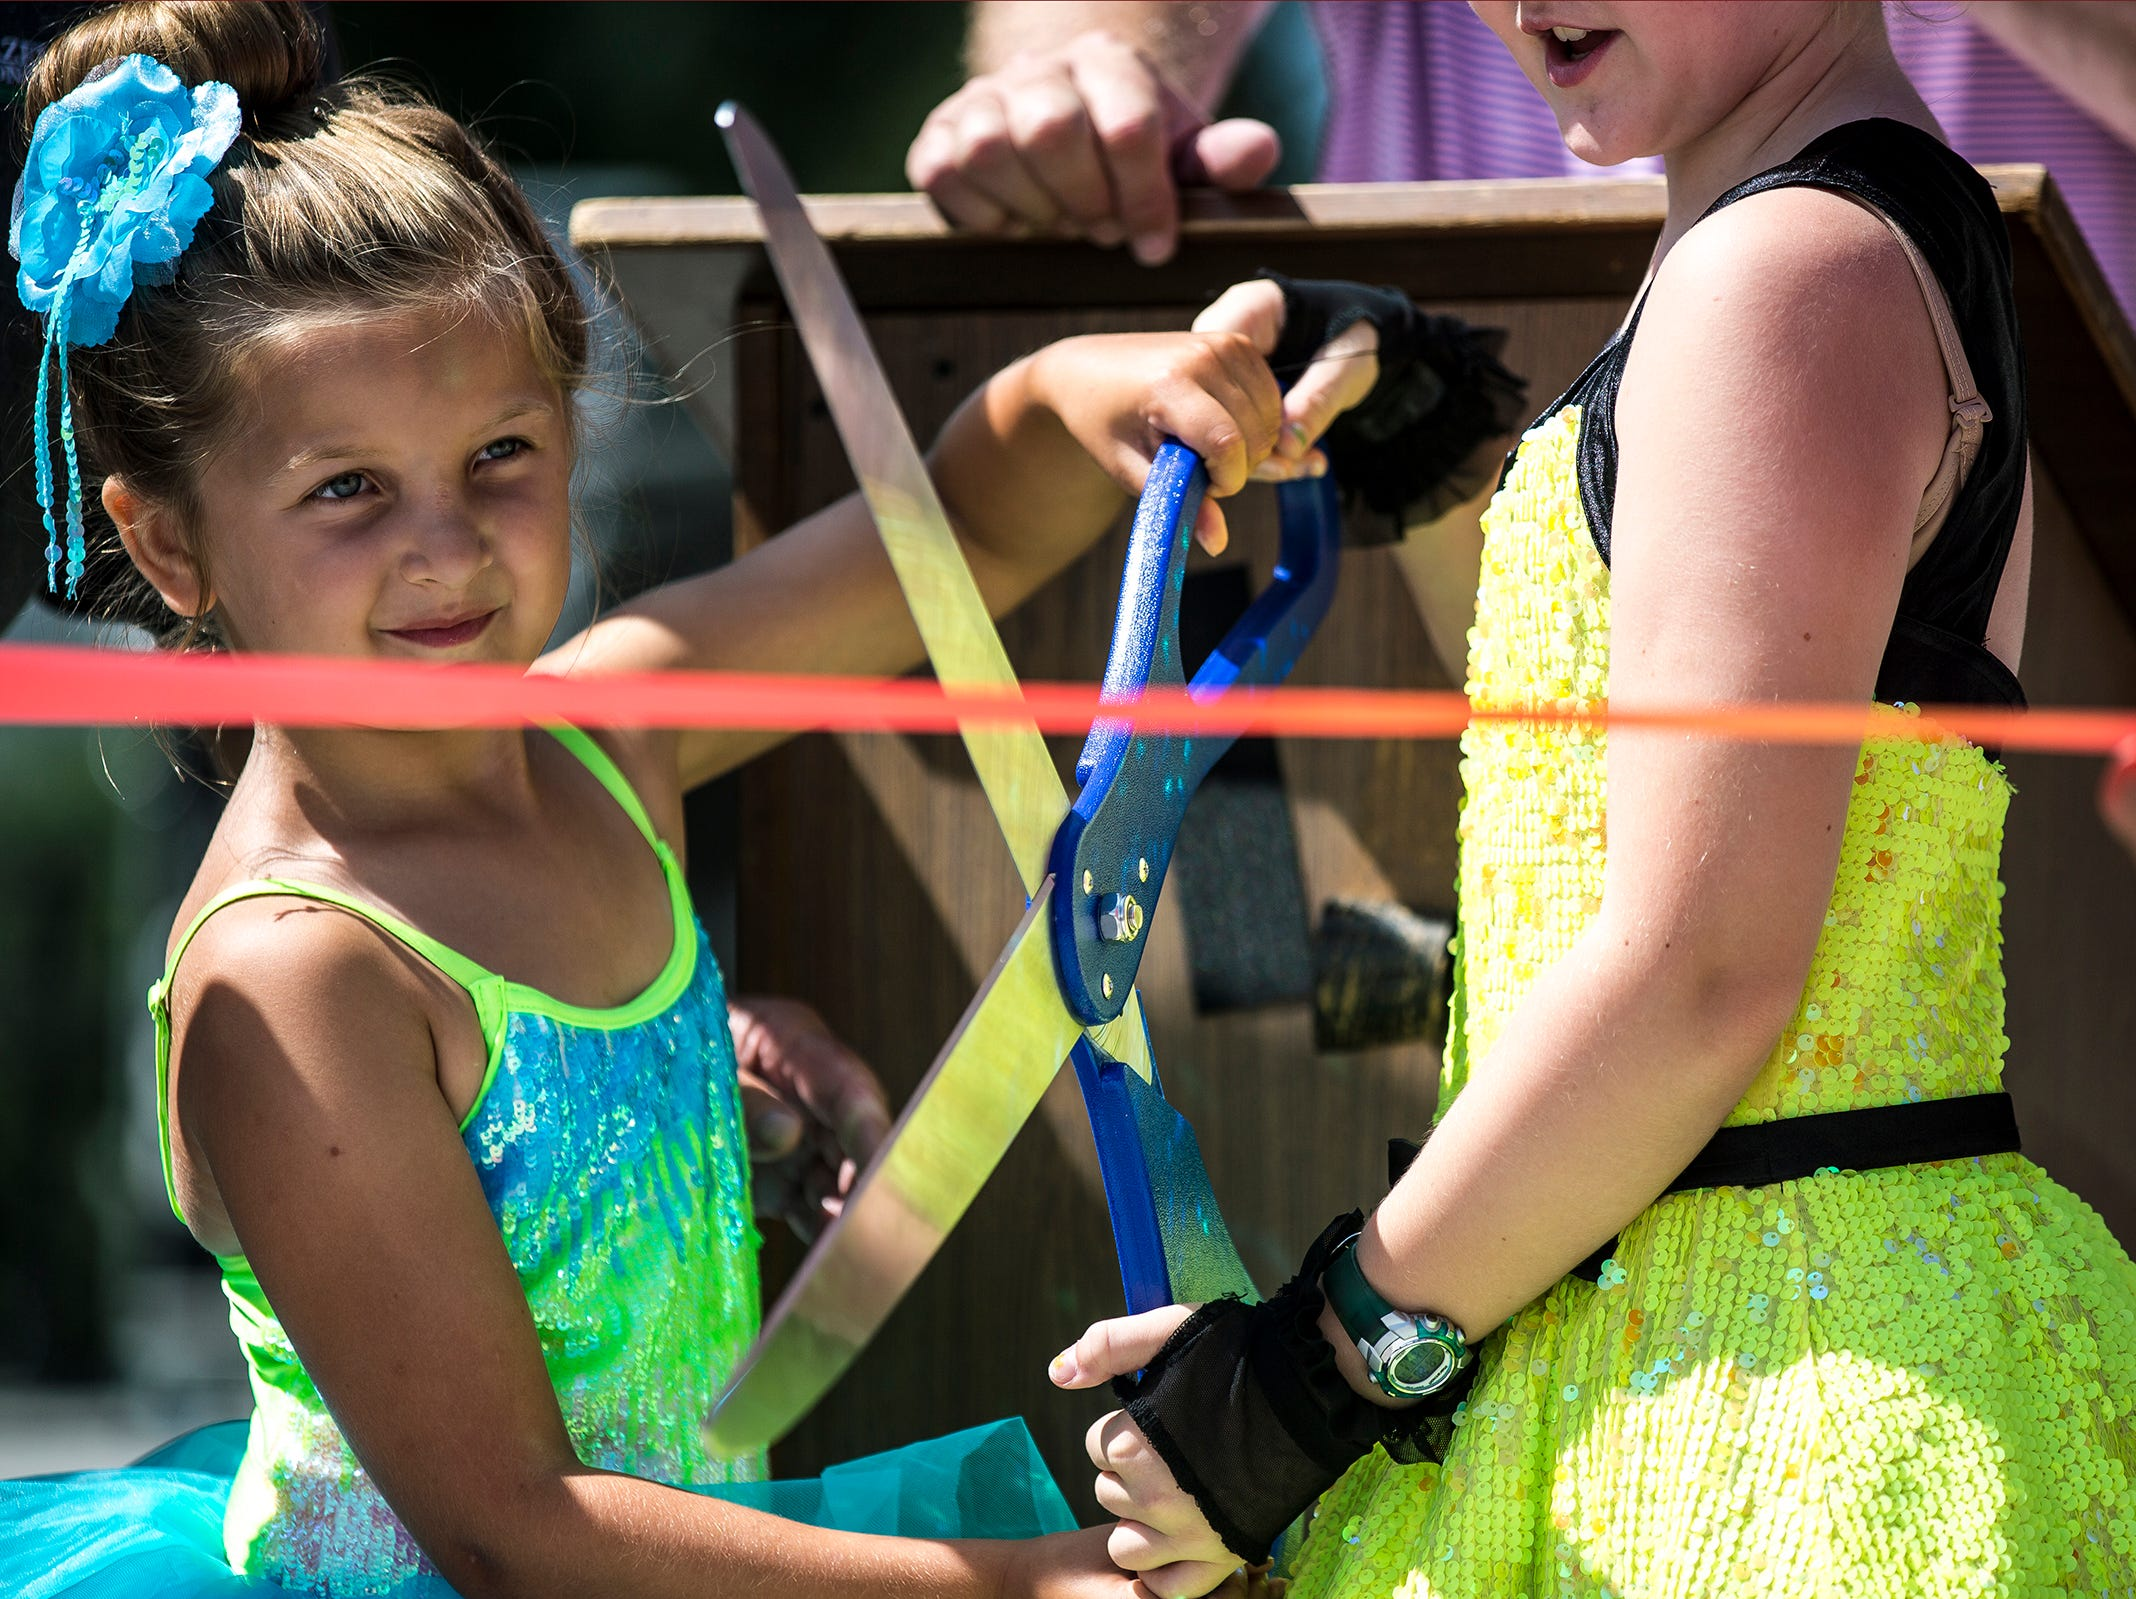 Members of the Dance Dynamics prepare to cut the ribbon during a ceremony for the new Band Shell at Lake Pacawa during Celebrate Plover at Lake Pacawa Park in Plover, Wis., July 28, 2018.